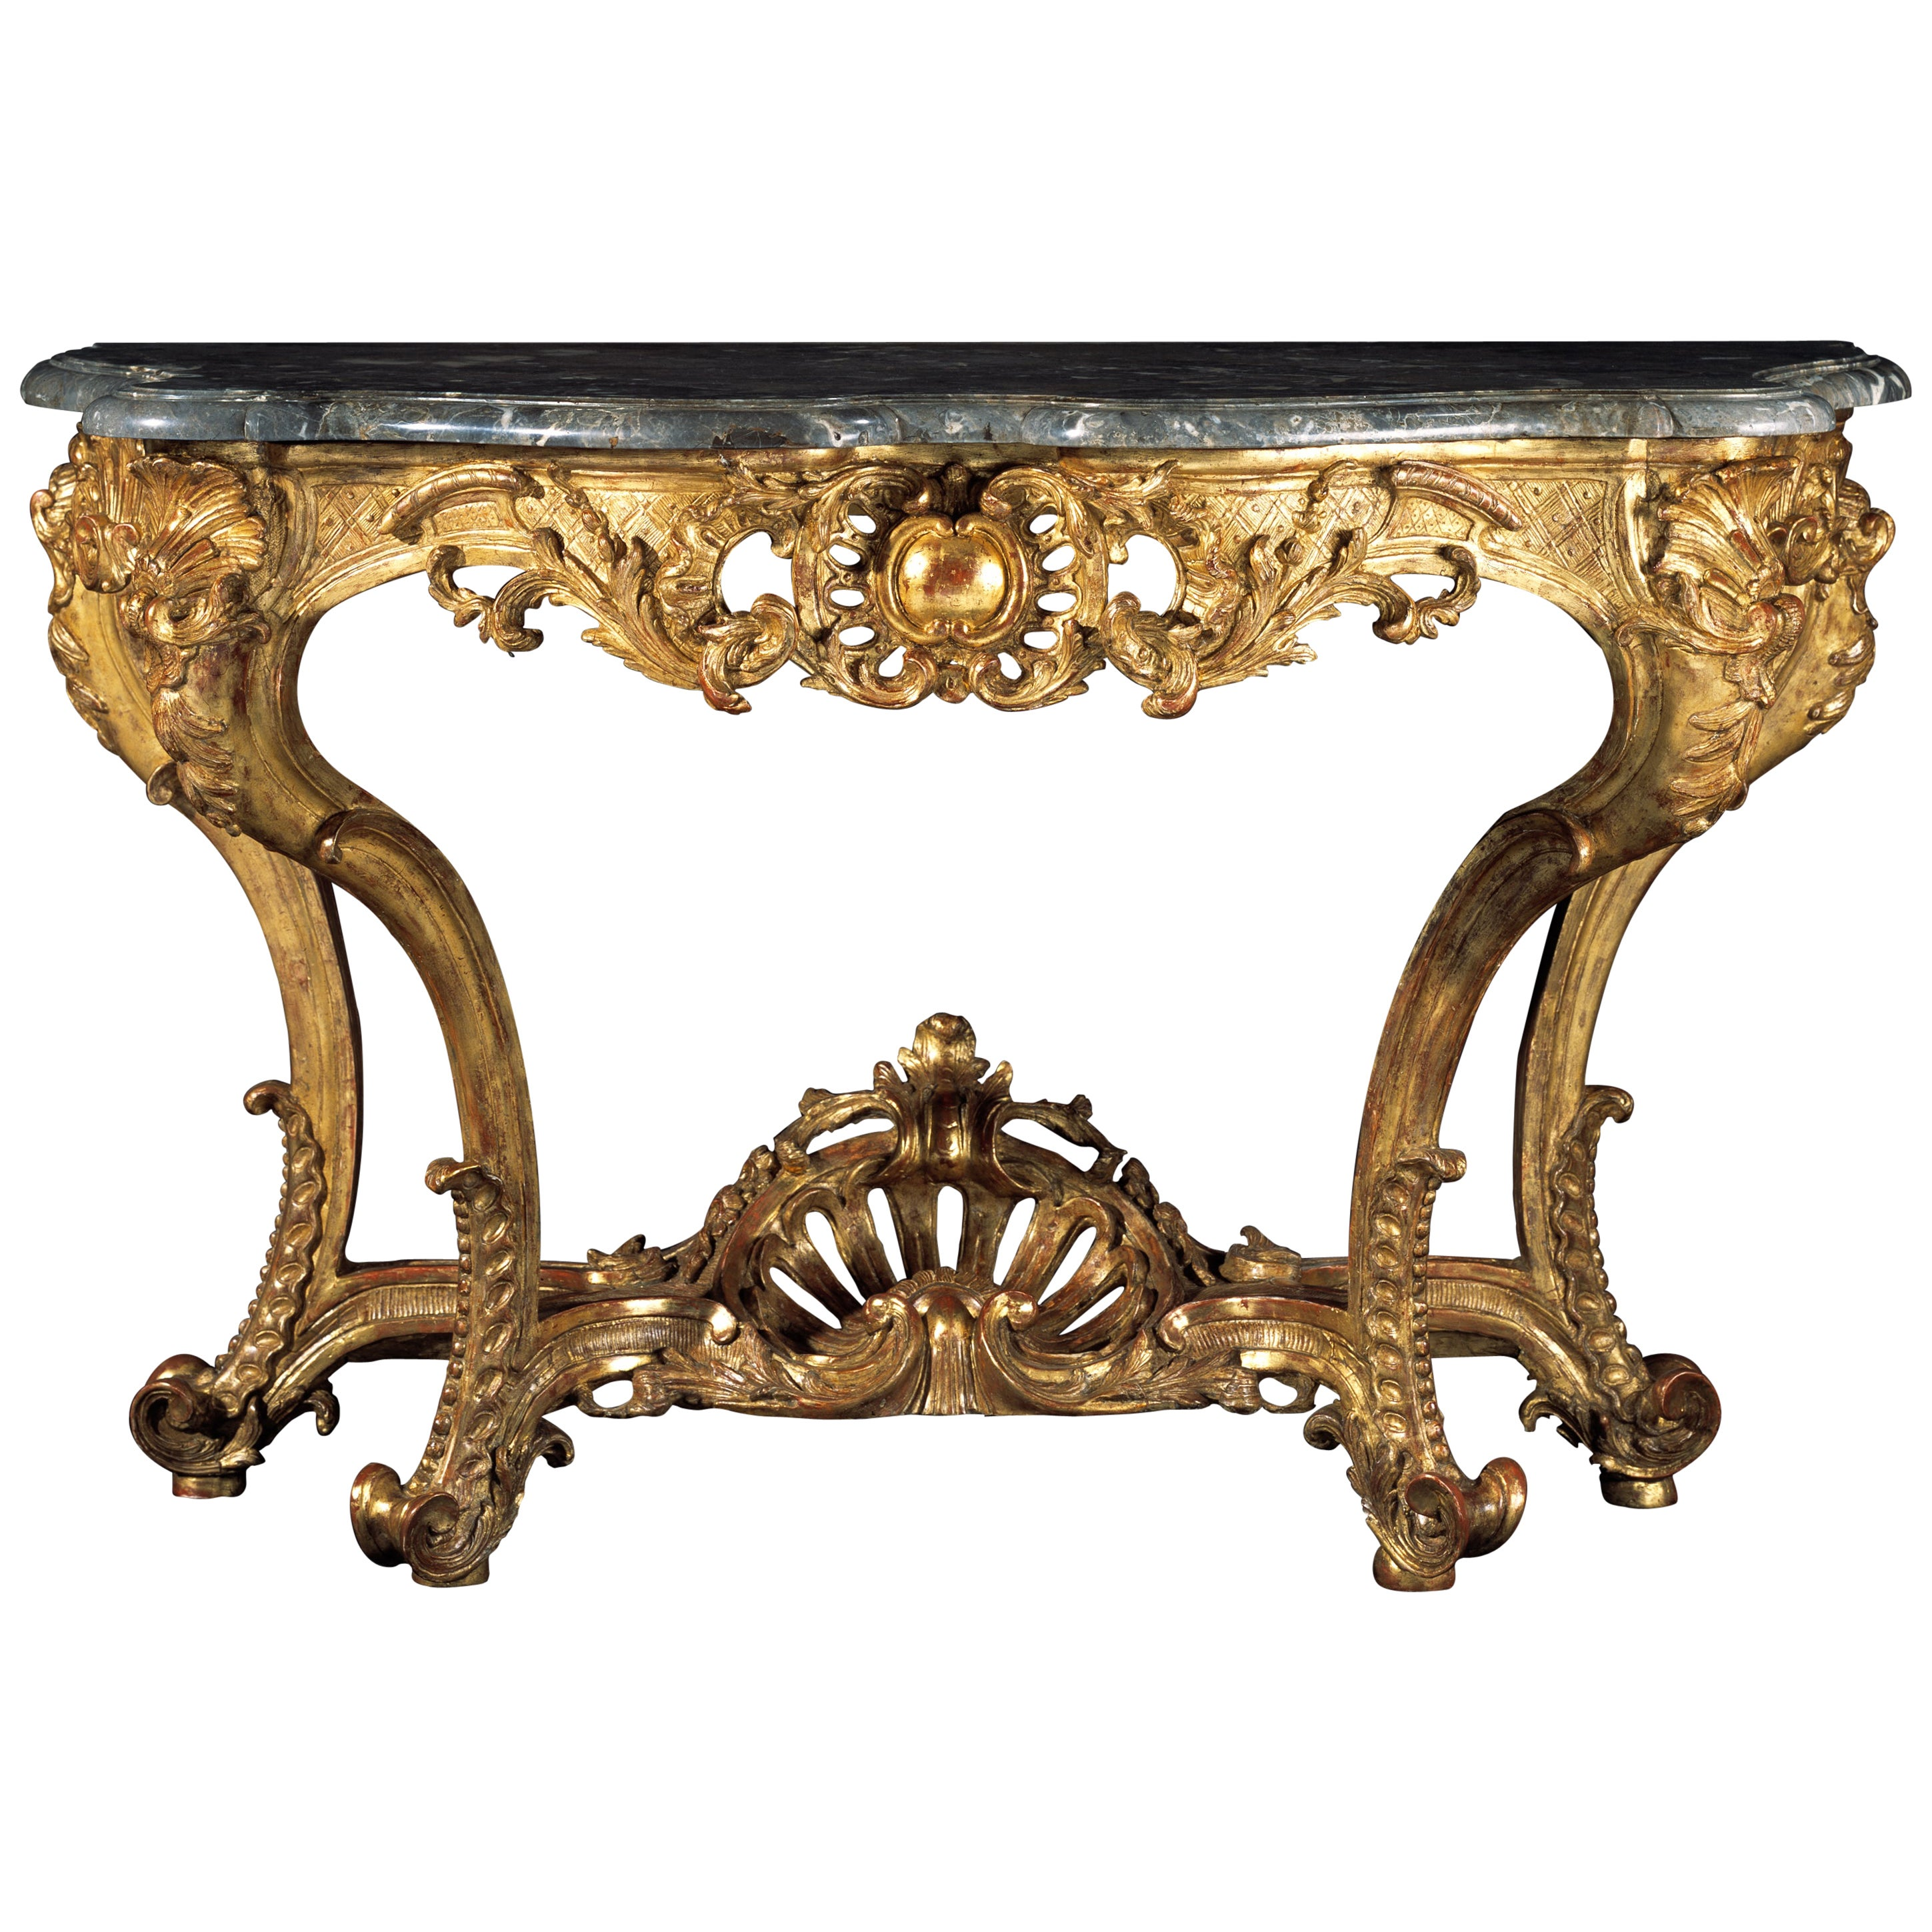 Large Early 18th Century Regence Console Table